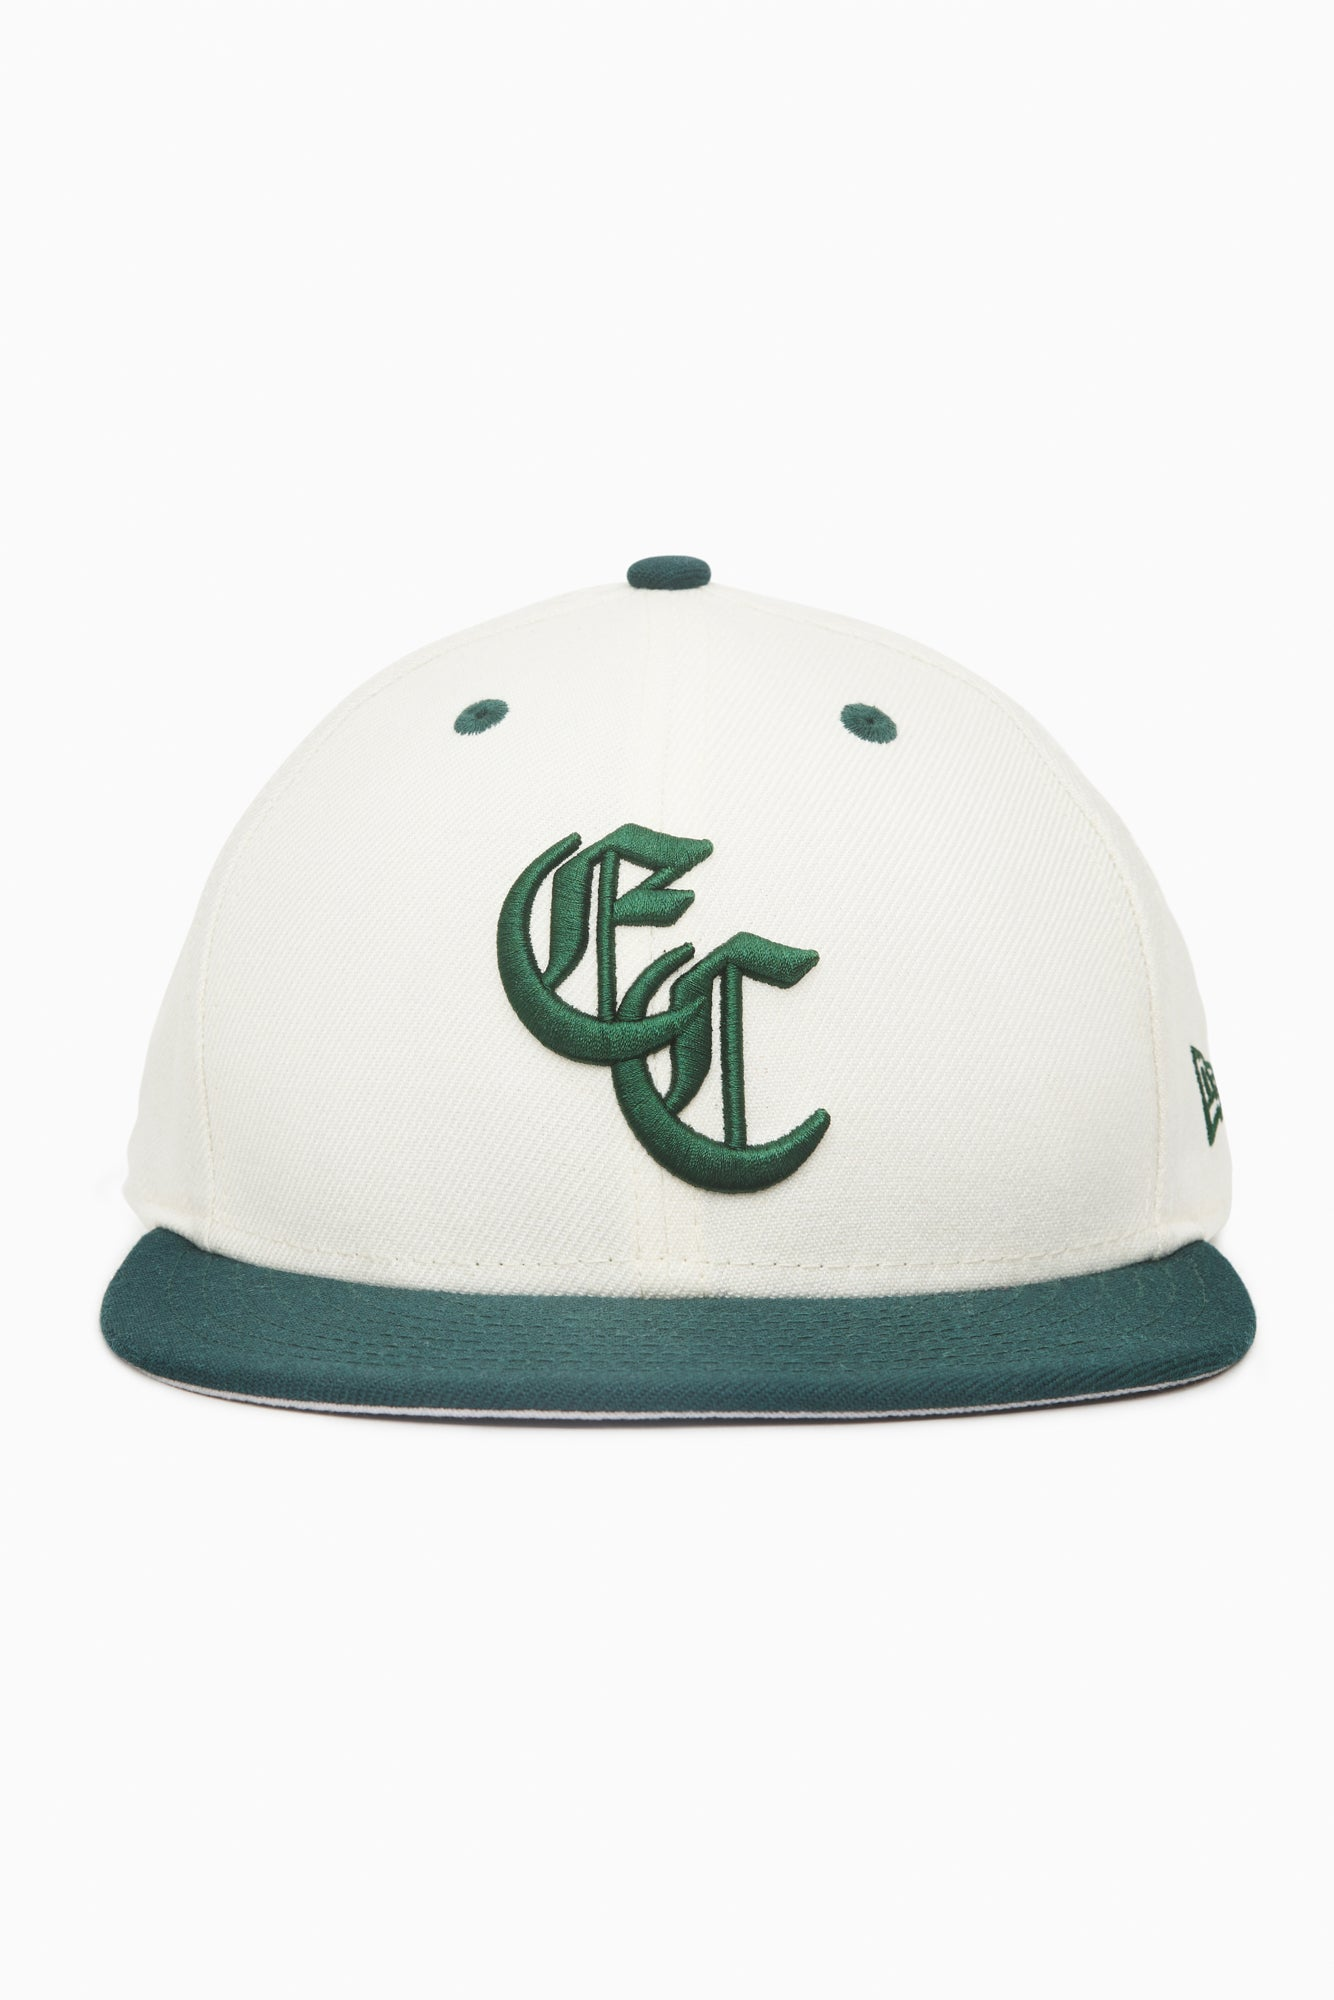 NEW ERA -  FOREST GREEN 59FIFTY LOW PROFILE FITTED